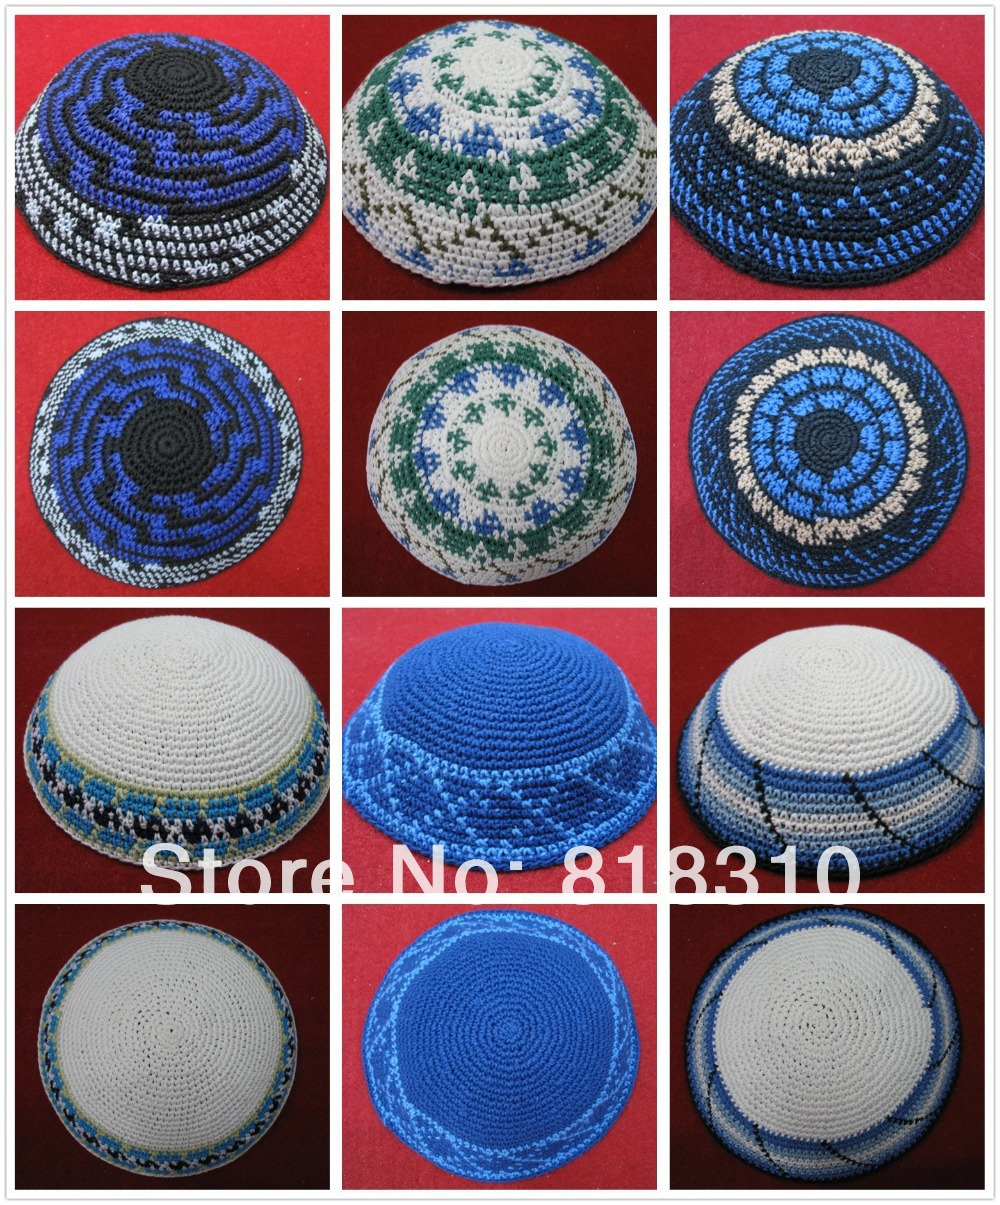 DMC HANDMADE KNITTED YARMULKE KIPPAH KIPPOT 16/17CM UNDER ENQUIRY ...